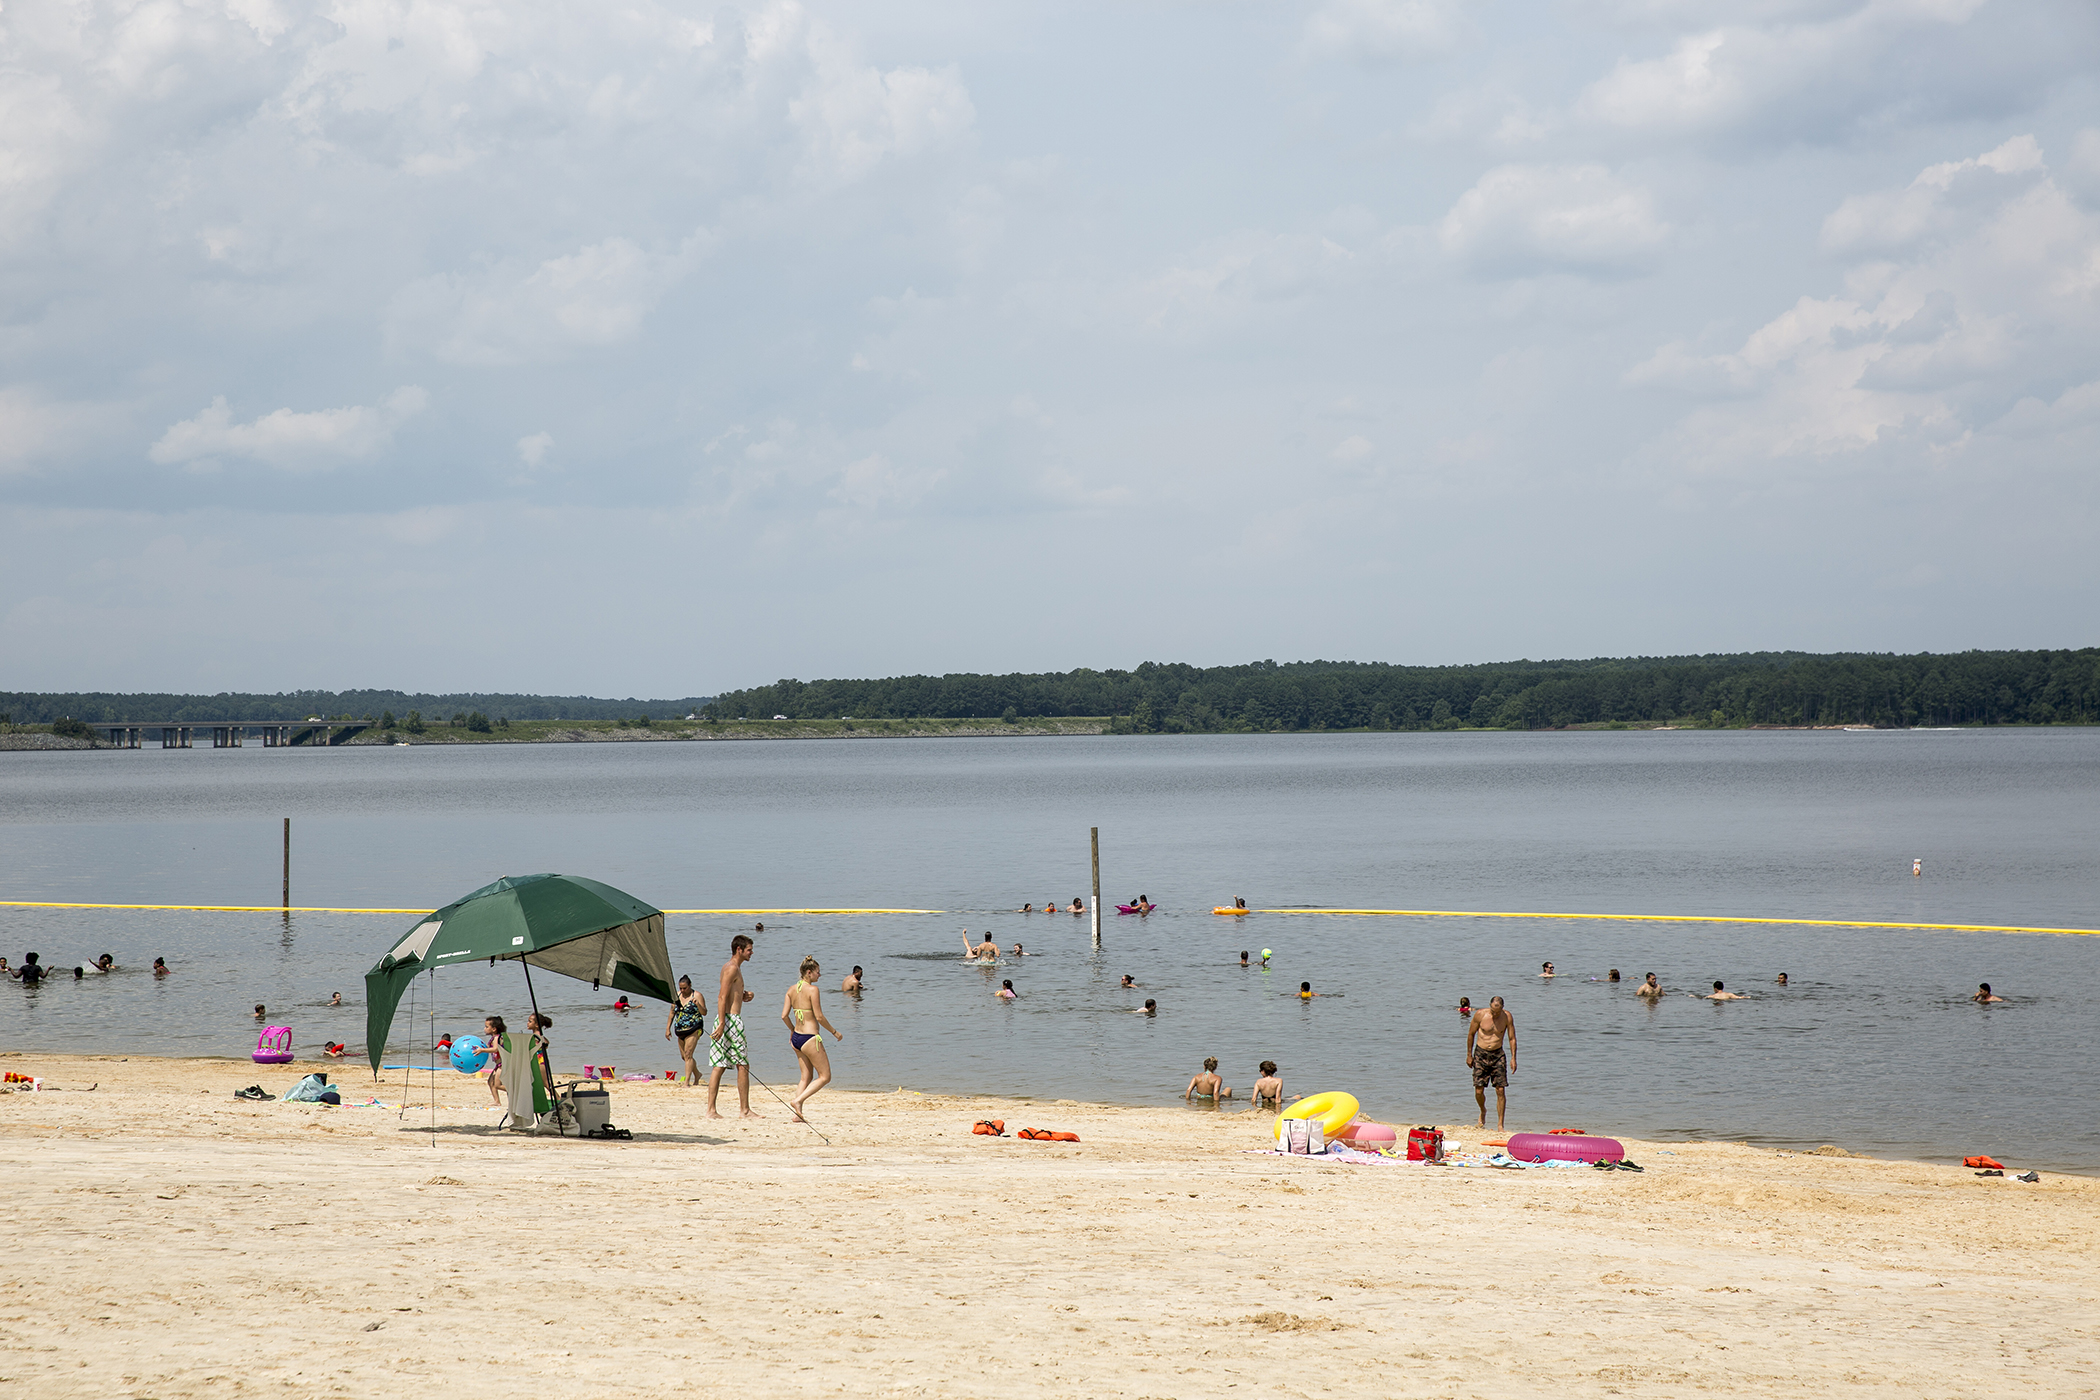 Visitors enjoy the beach at the Jordan Lake State Recreation Area outside of Apex, NC